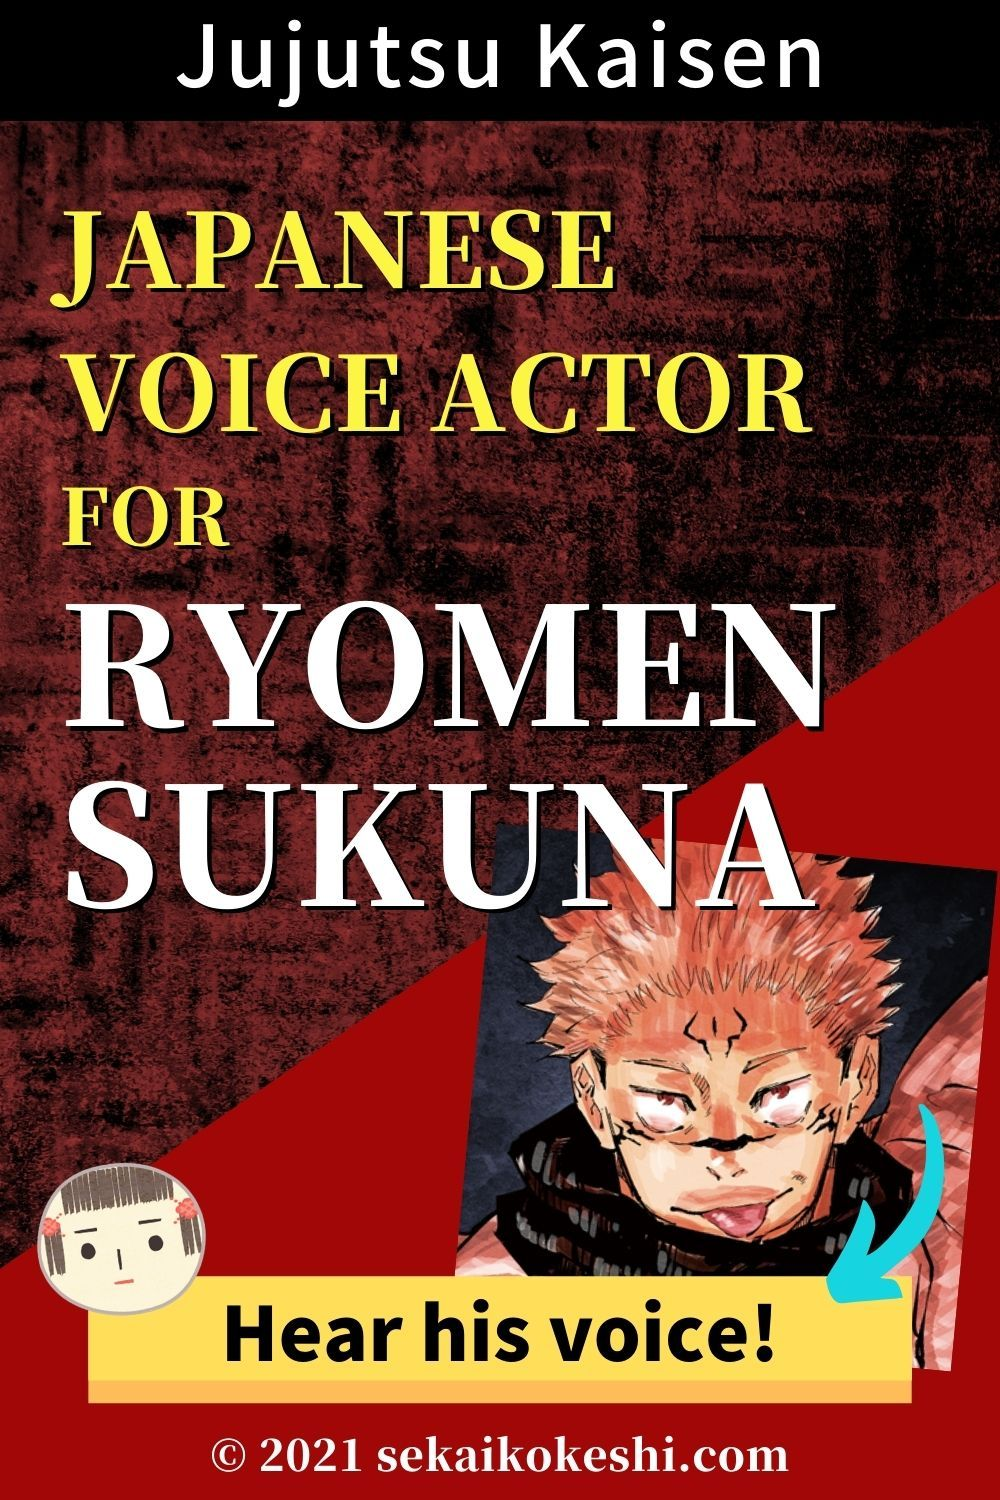 Japanese Voice Actor For Ryomen Sukuna In Jujutsu Kaisen Anime Click Here For The Voice In 2021 Voice Actor The Voice Jujutsu